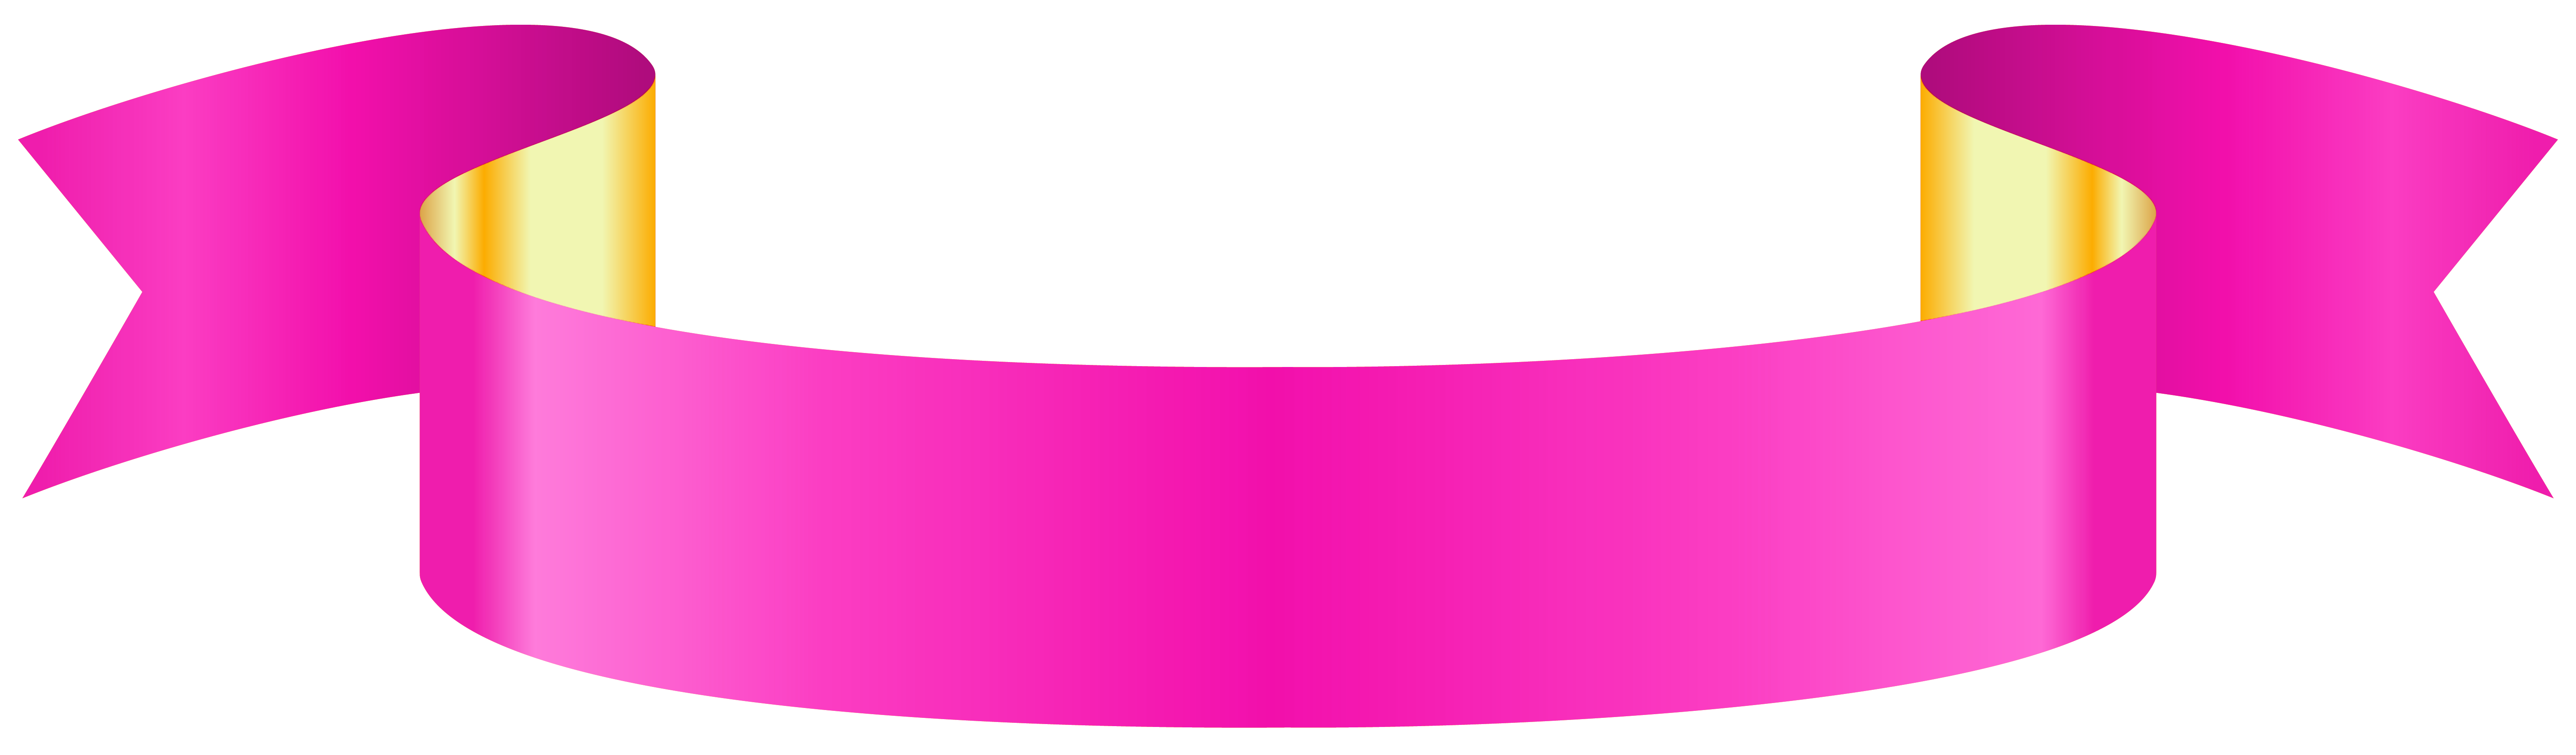 Pink Banner Png image #40221